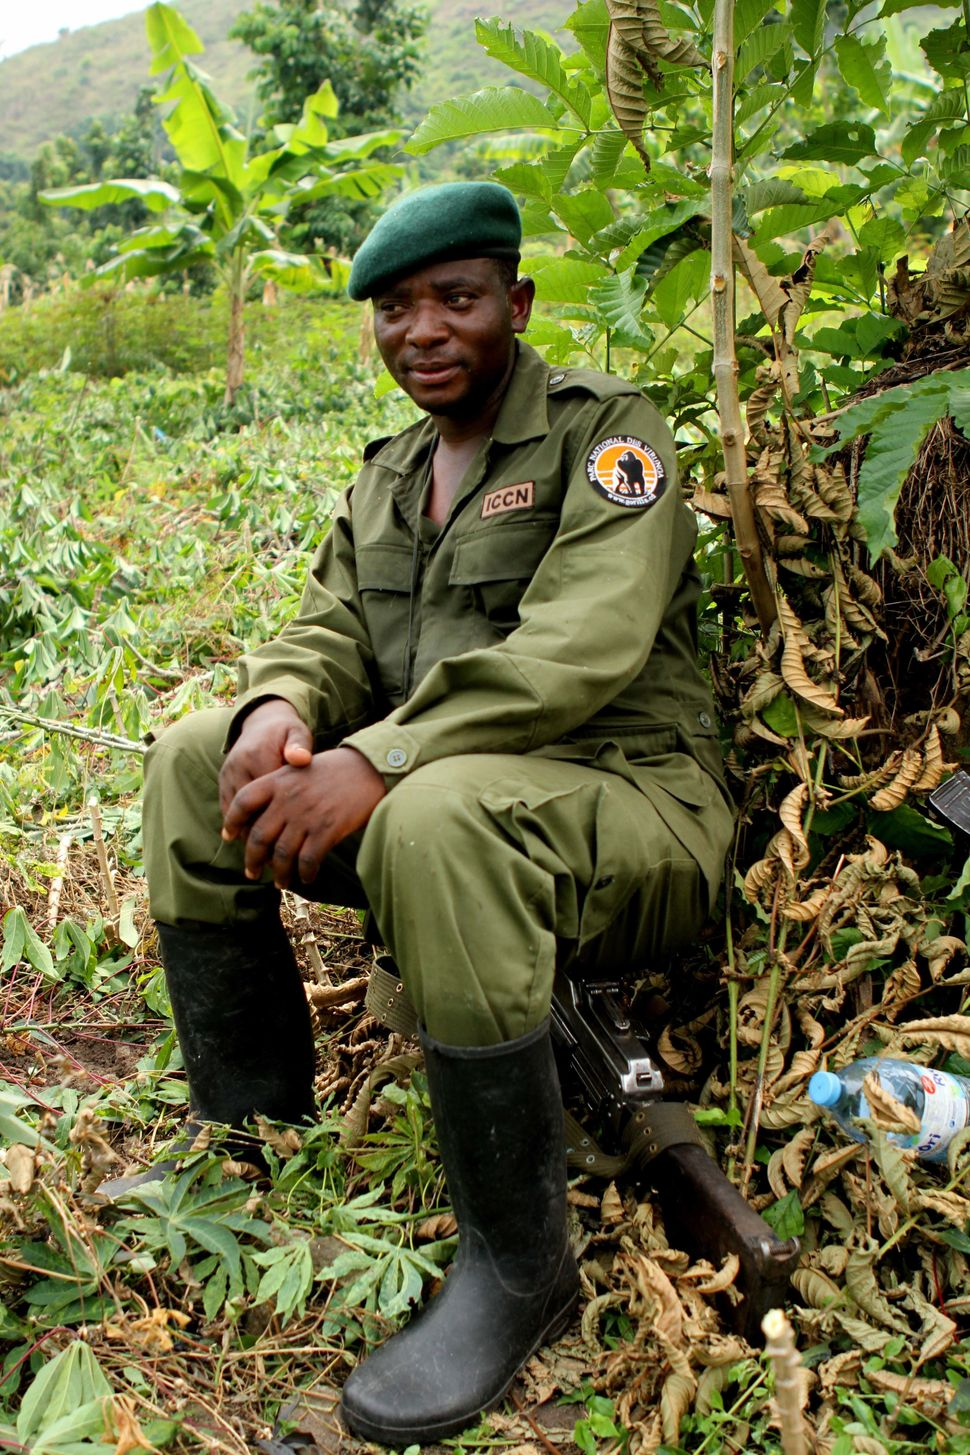 Rodrigue Katembo, a park ranger in the Democratic Republic of Congo, was awarded for his efforts to stop oil exploration in t